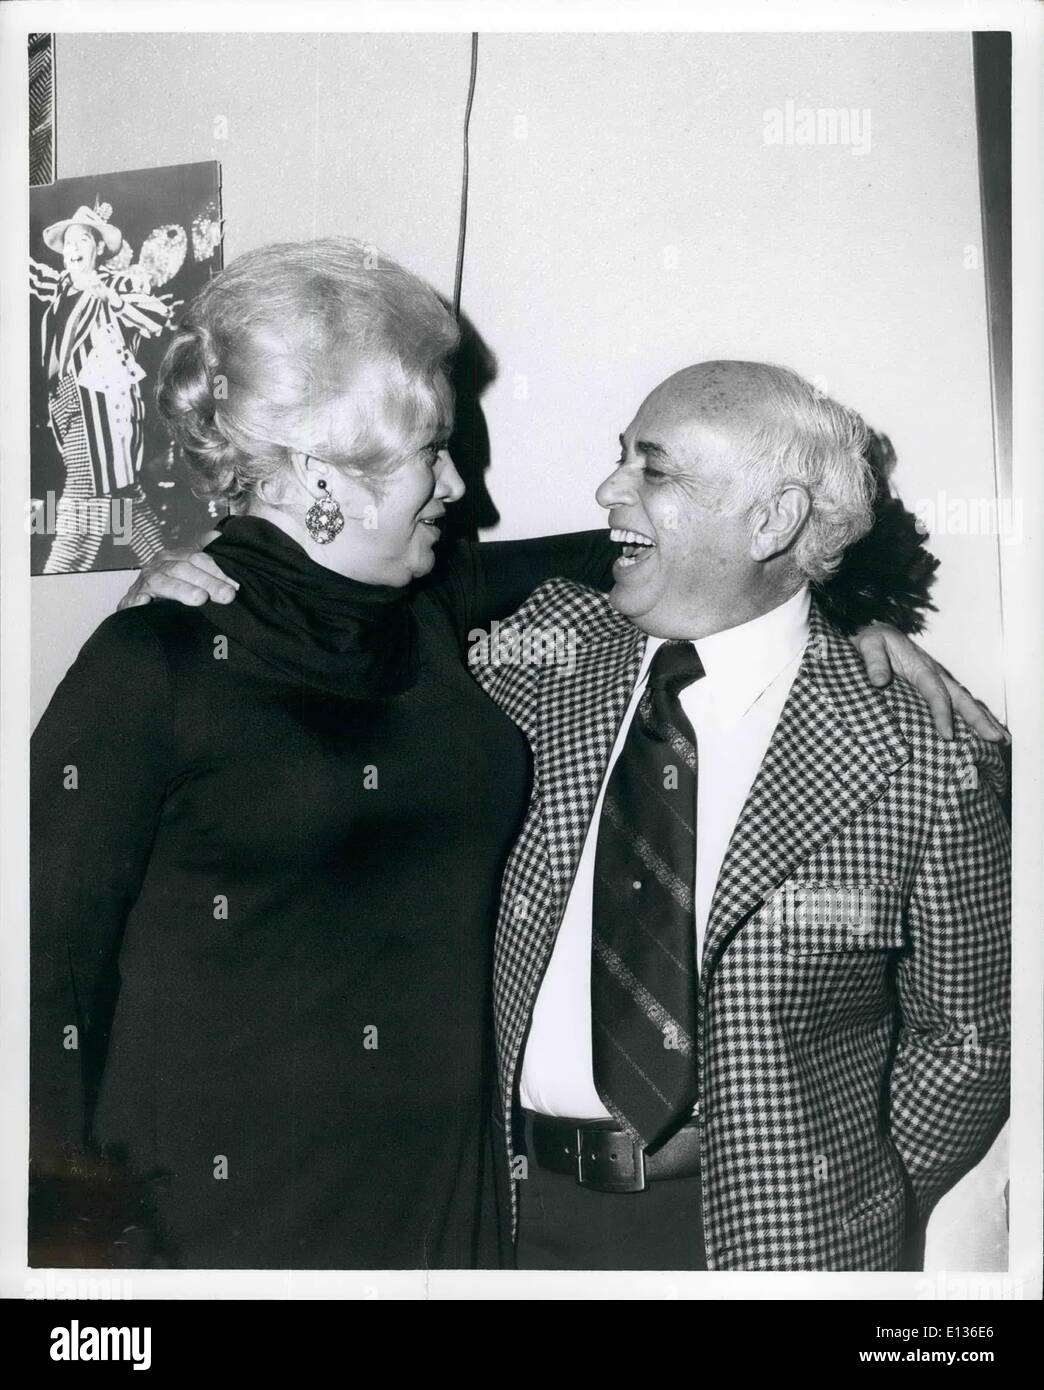 Feb. 28, 2012 - TV personality, Dagmar, with Allen Funt of ''Candid Camera' - Stock Image